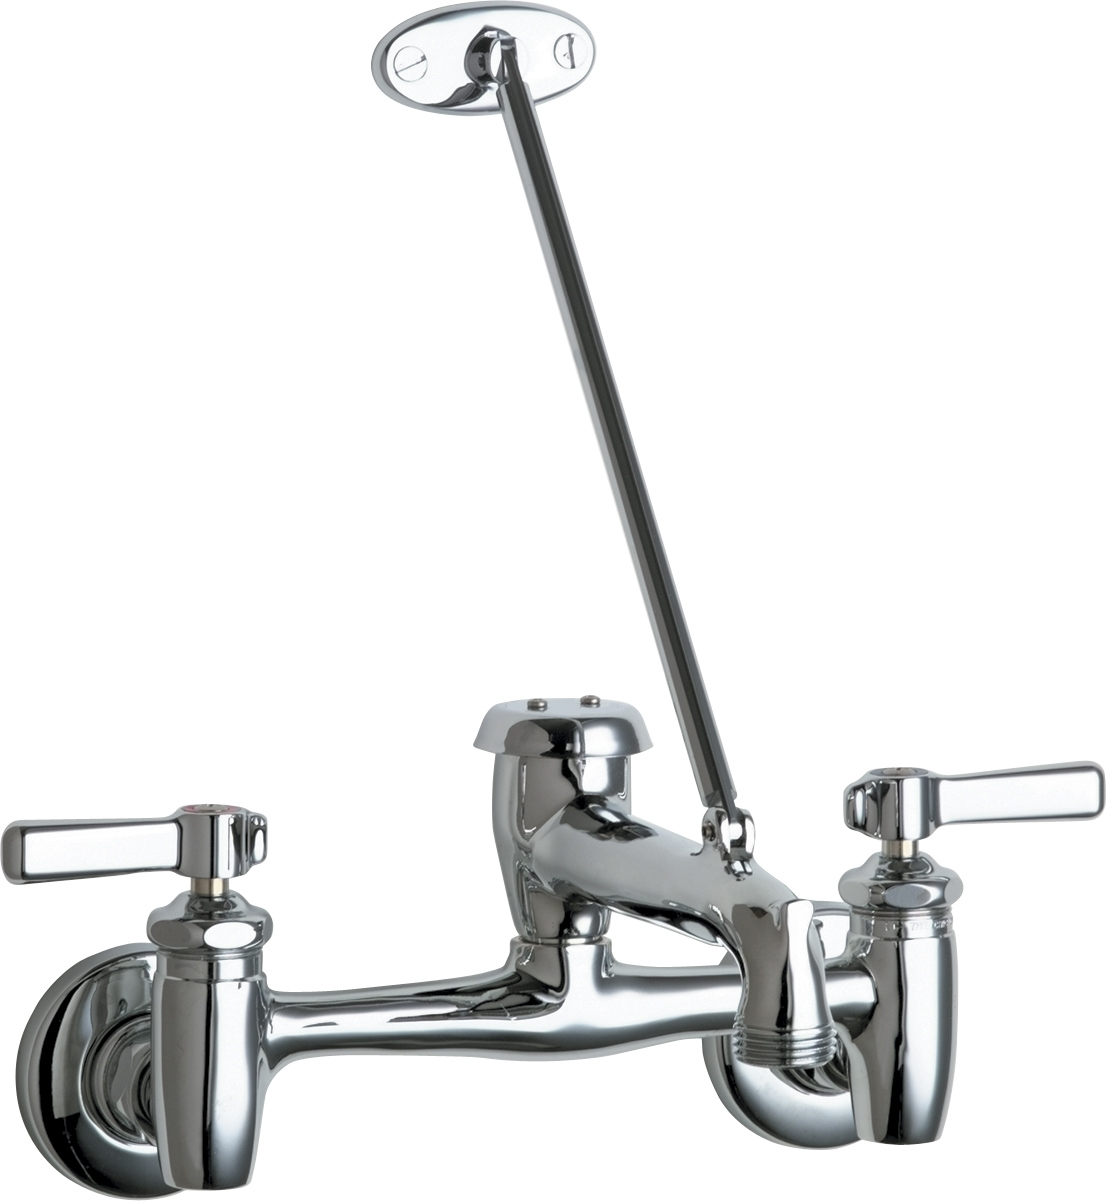 897 cp manual faucets chicago faucets inside dimensions 1106 x 1201